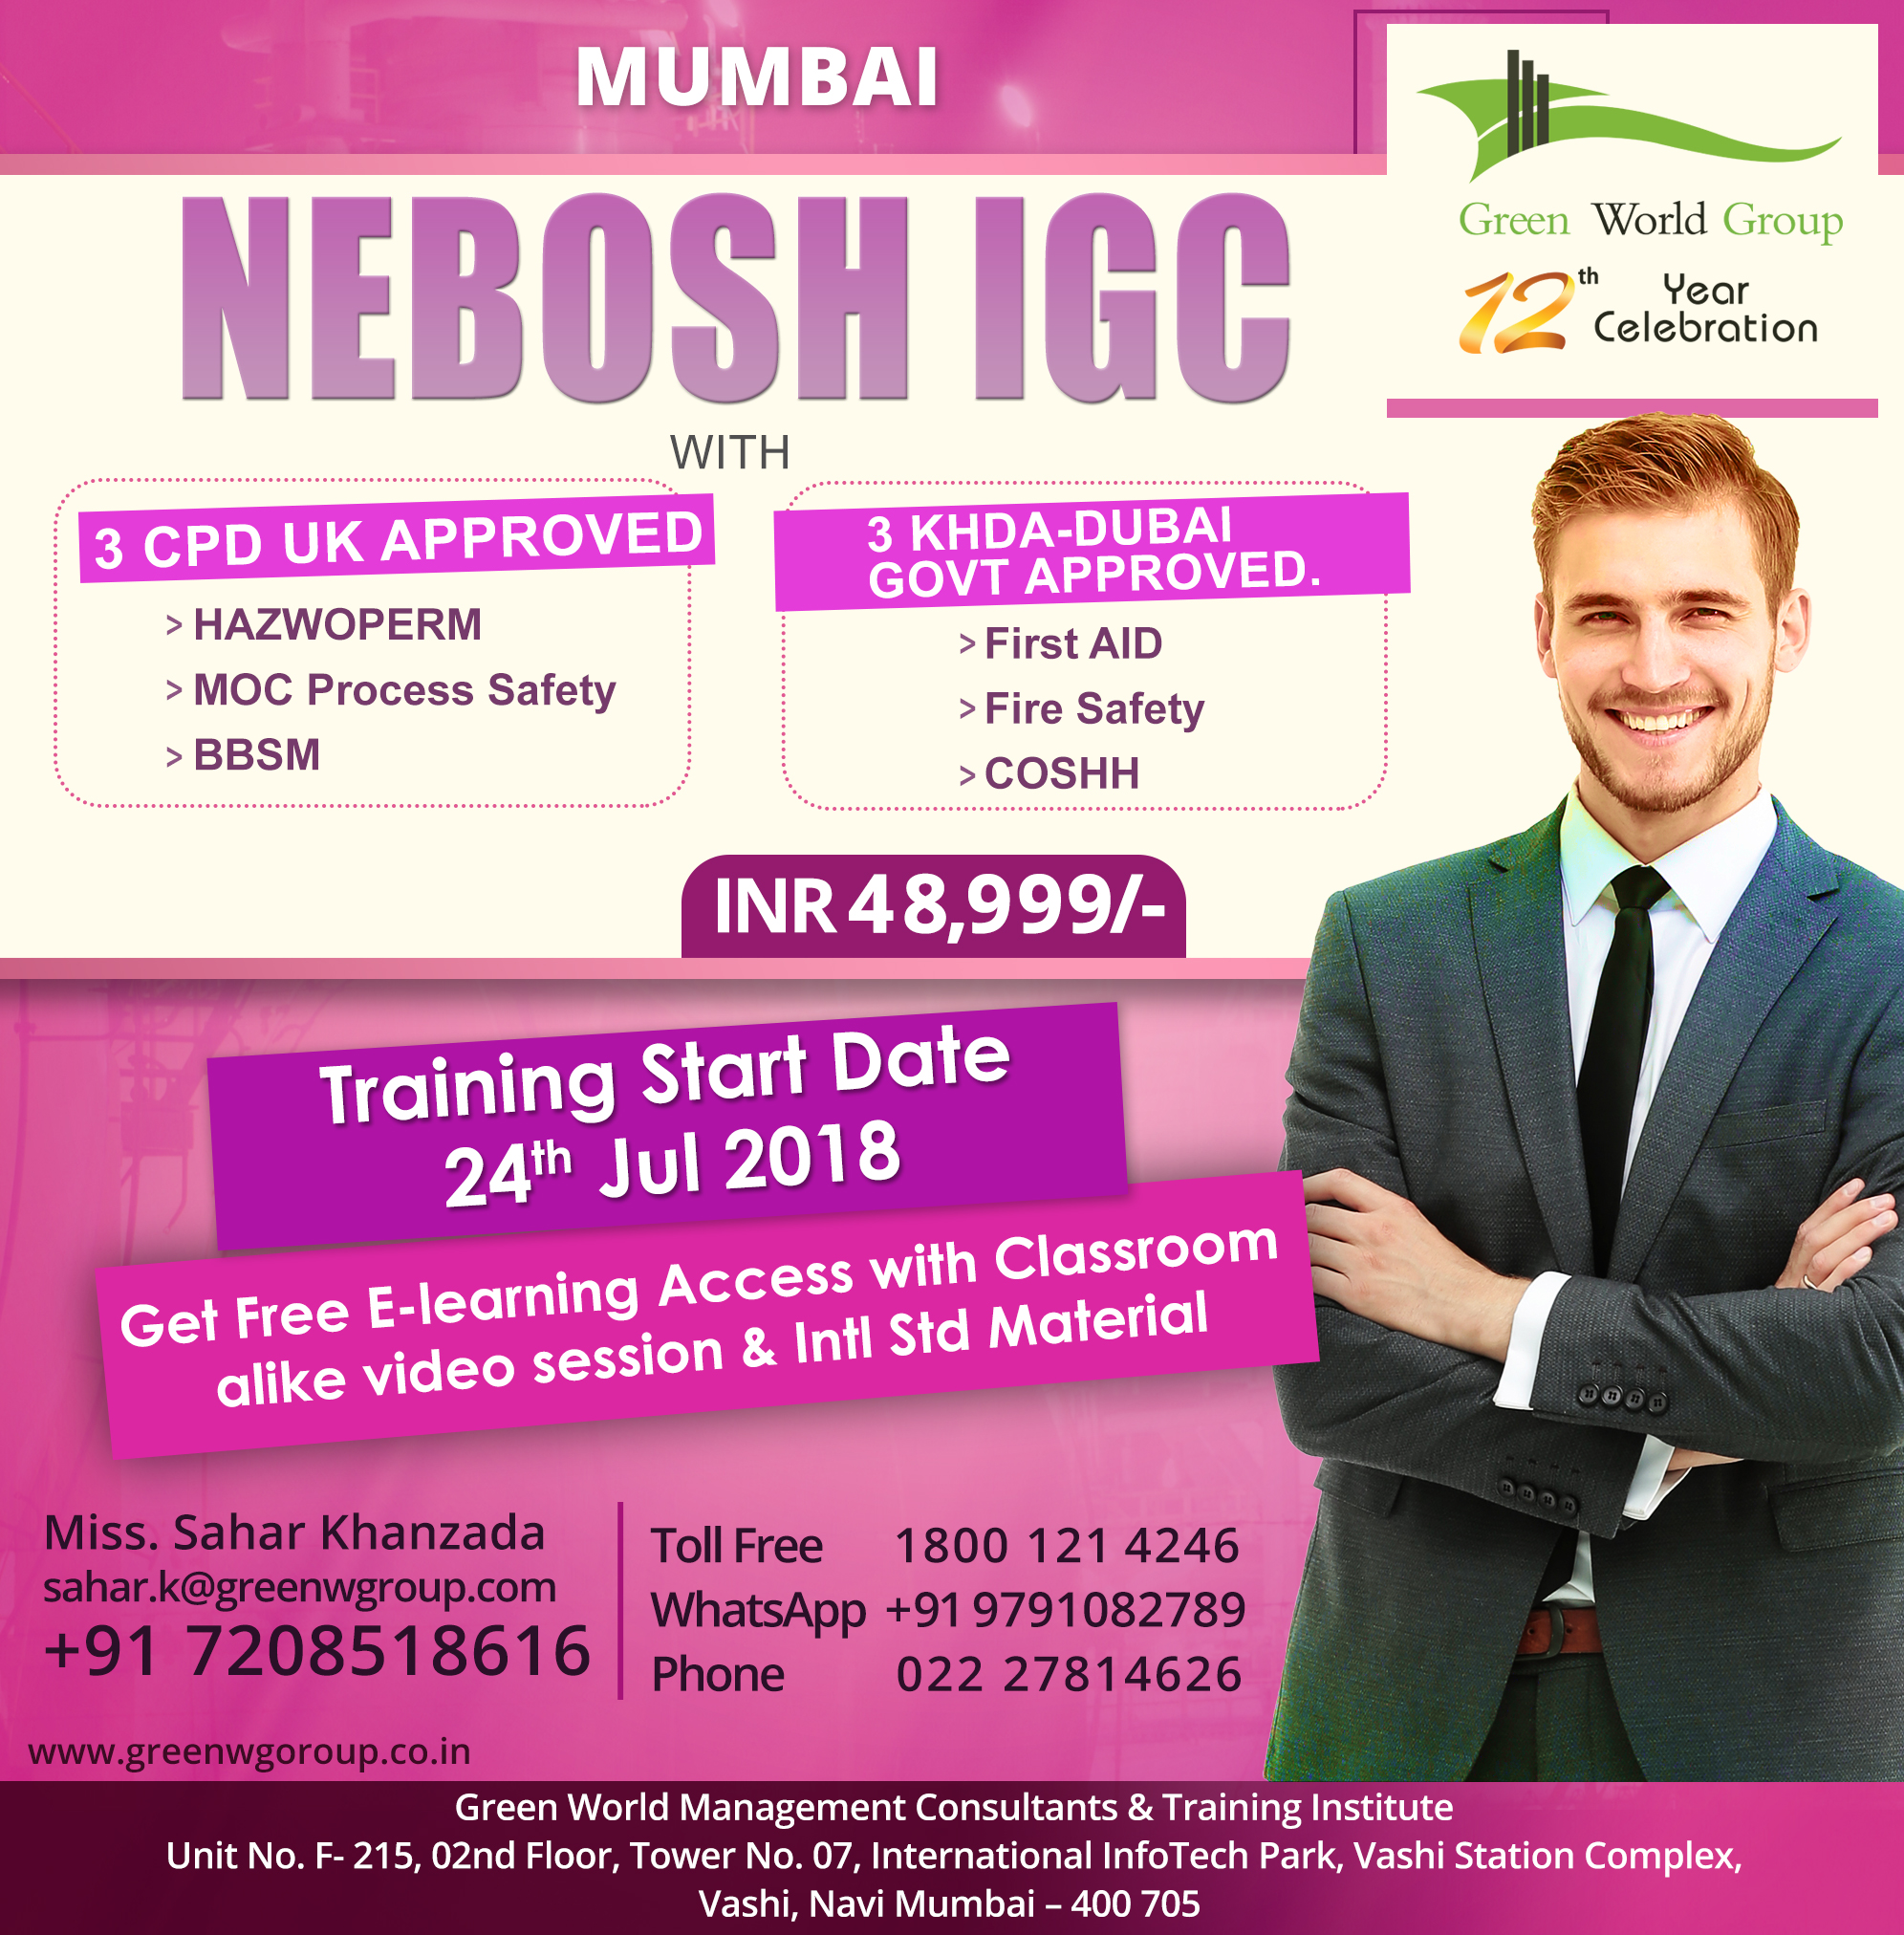 NEBOSH-IGC_New_Offer_May_Mumbai